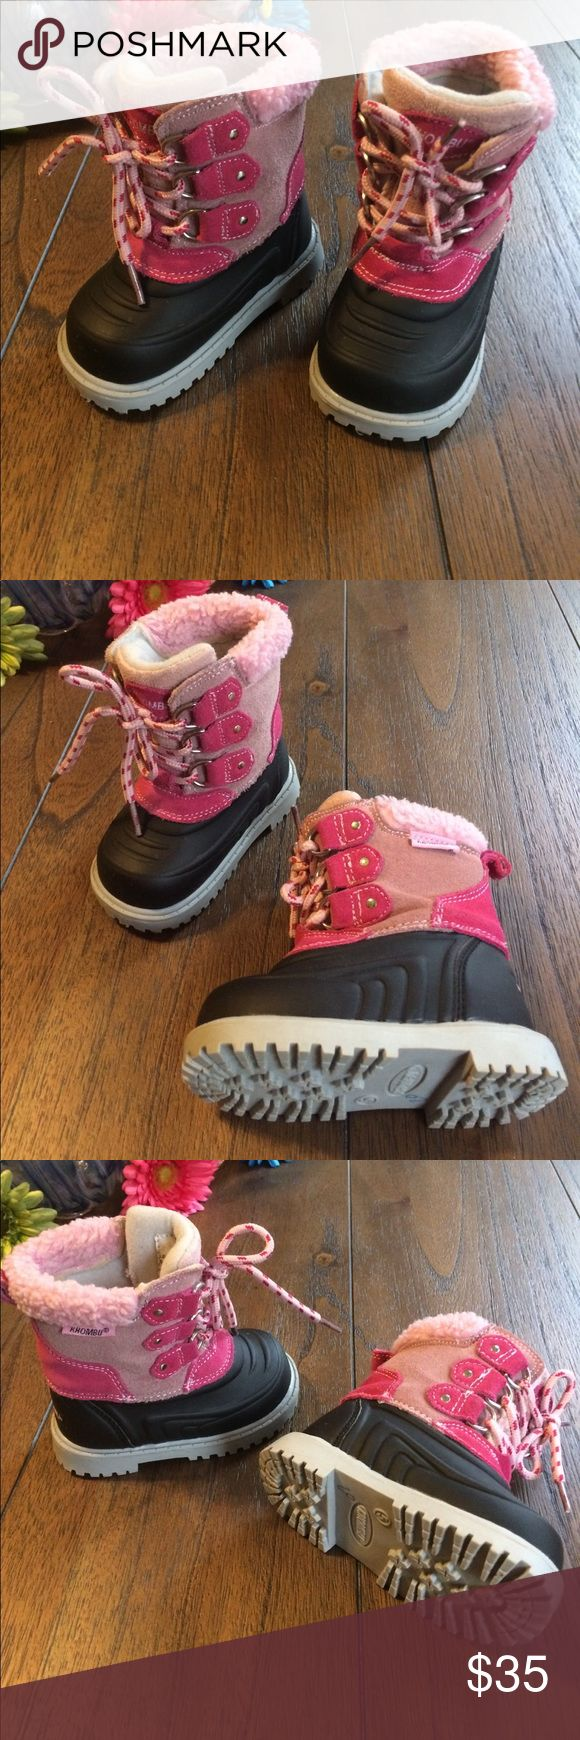 Khombu Boots Are these not the MOST adorable little mini me boots...EVER!?! Sturdy Waterproof black upper keeps feet dry. Suede upper in two tones of pink with laces. Fuzzy pink at tops and insoles are also cushy pink. Great traction bottoms. Khombu Shoes Rain & Snow Boots